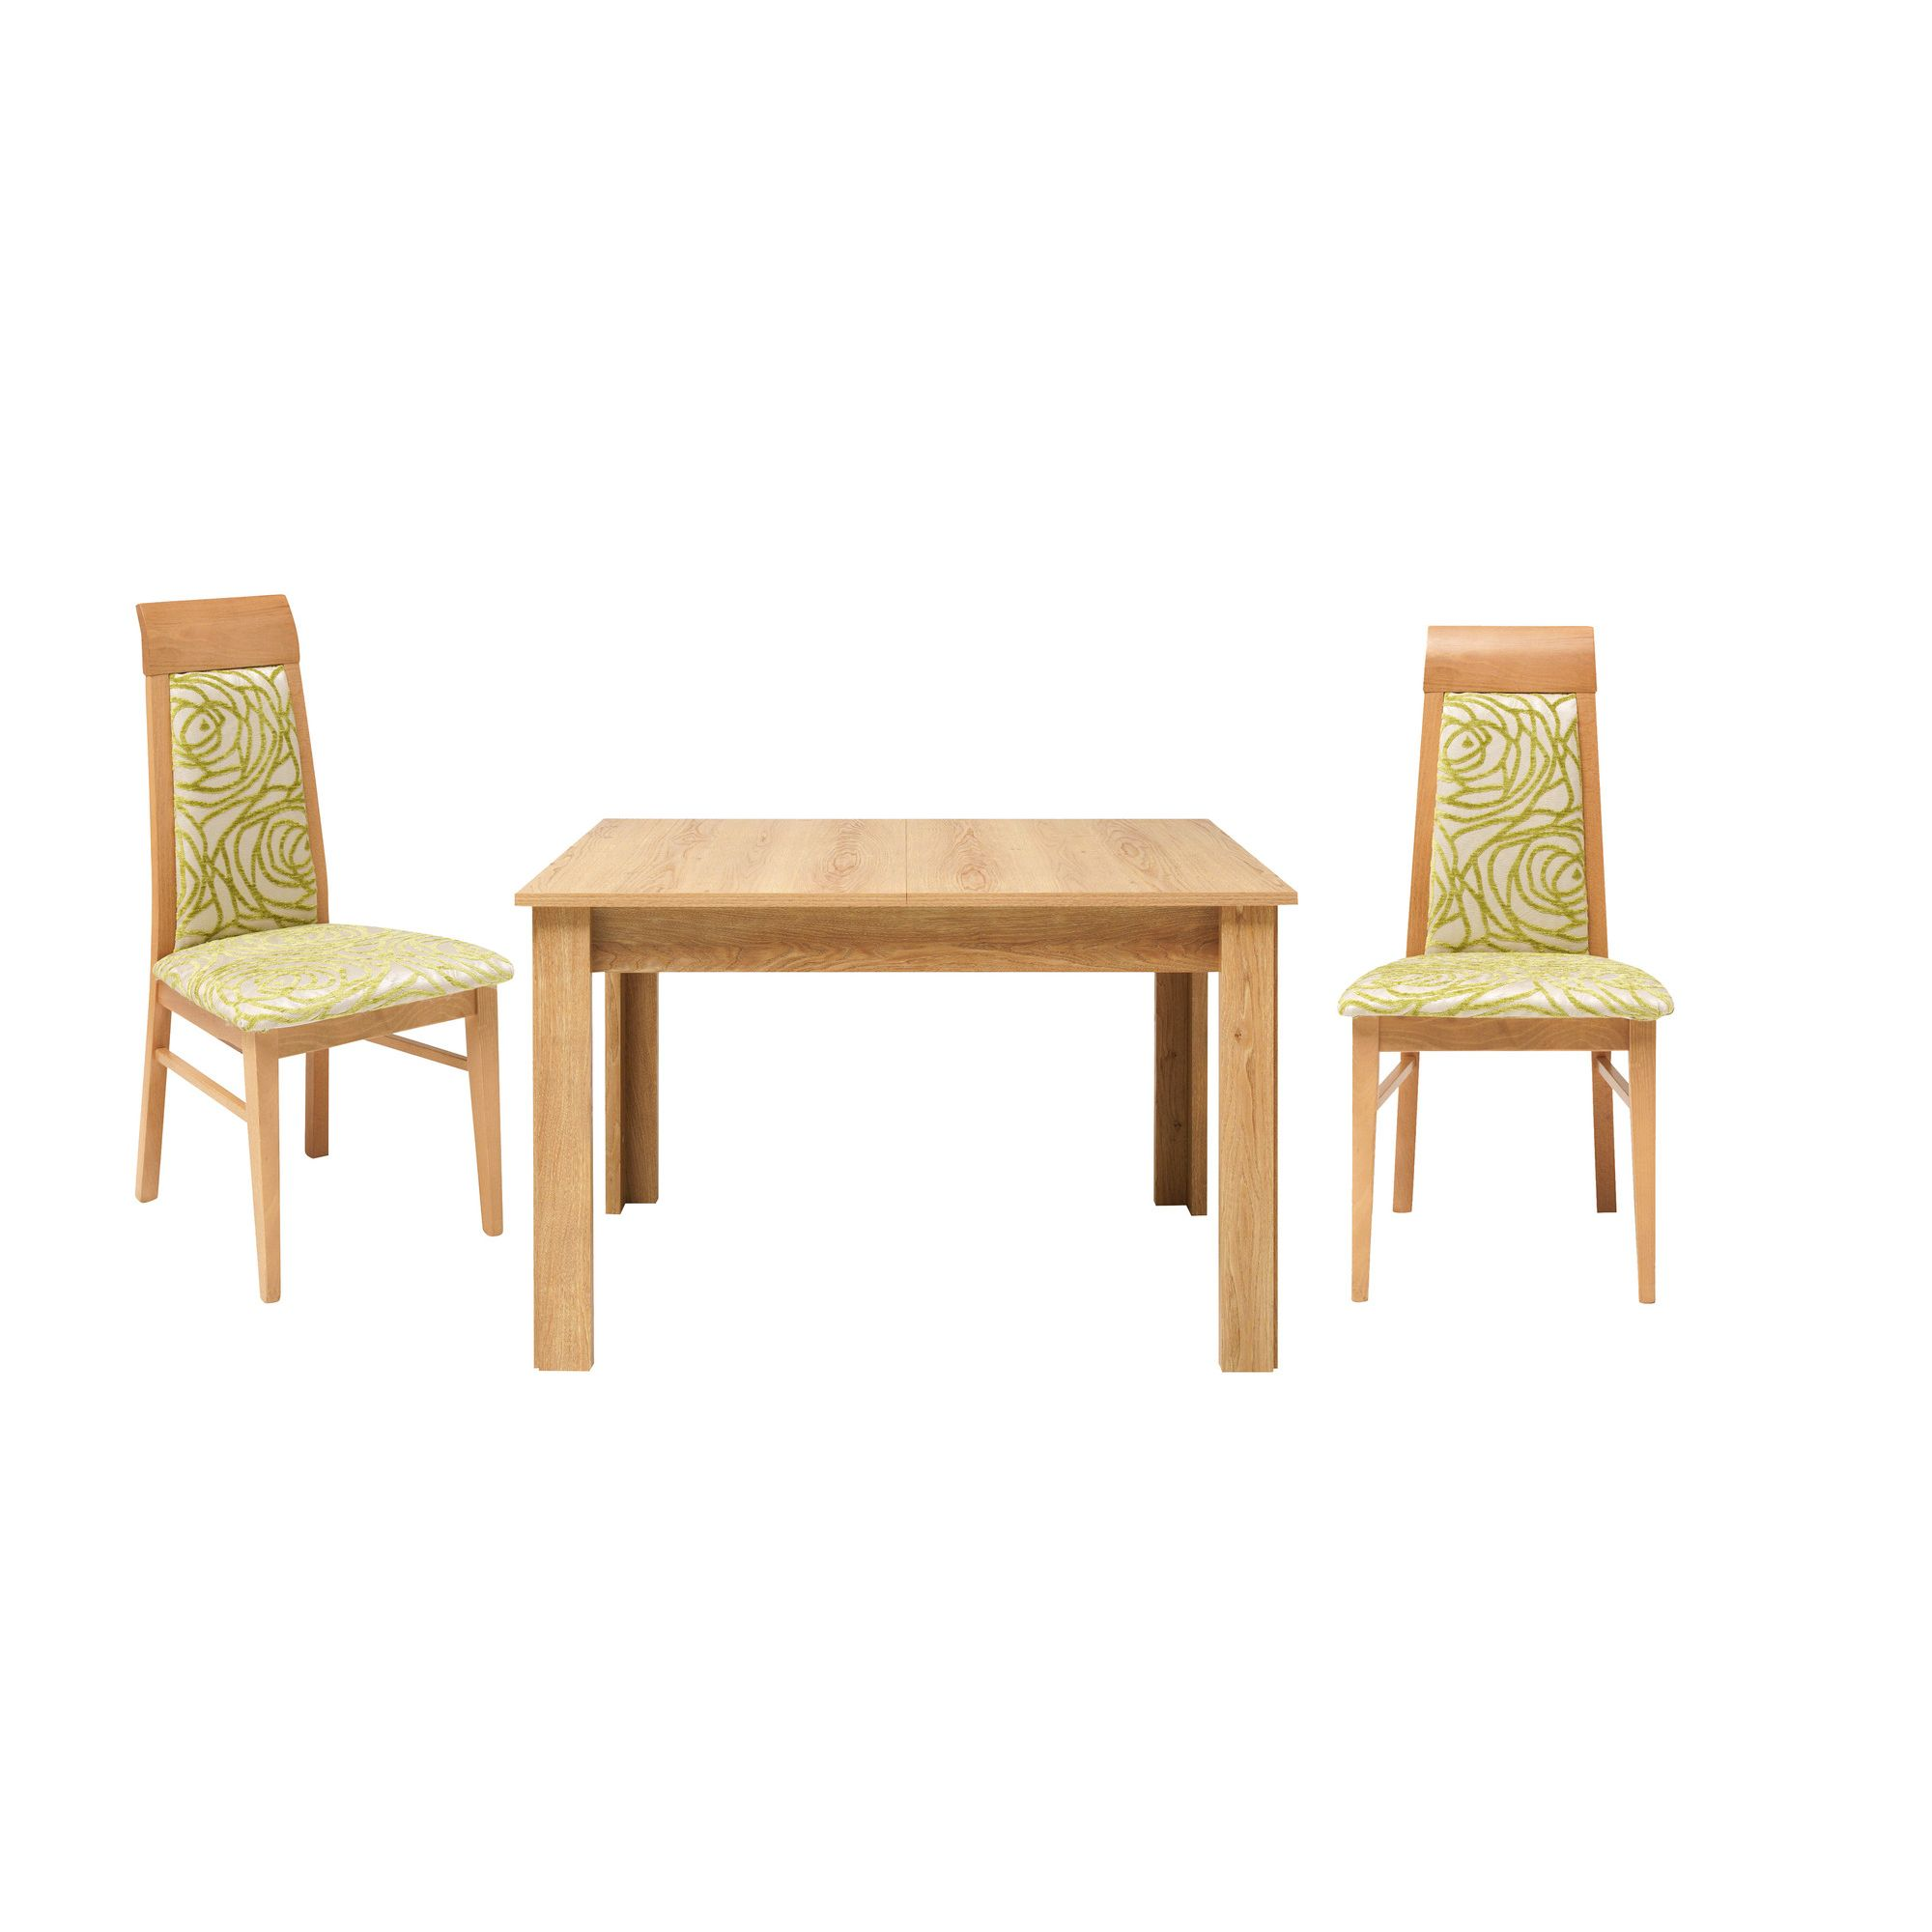 Caxton Darwin Dining Table Set with 6 Upholstered Chair in Chestnut at Tesco Direct